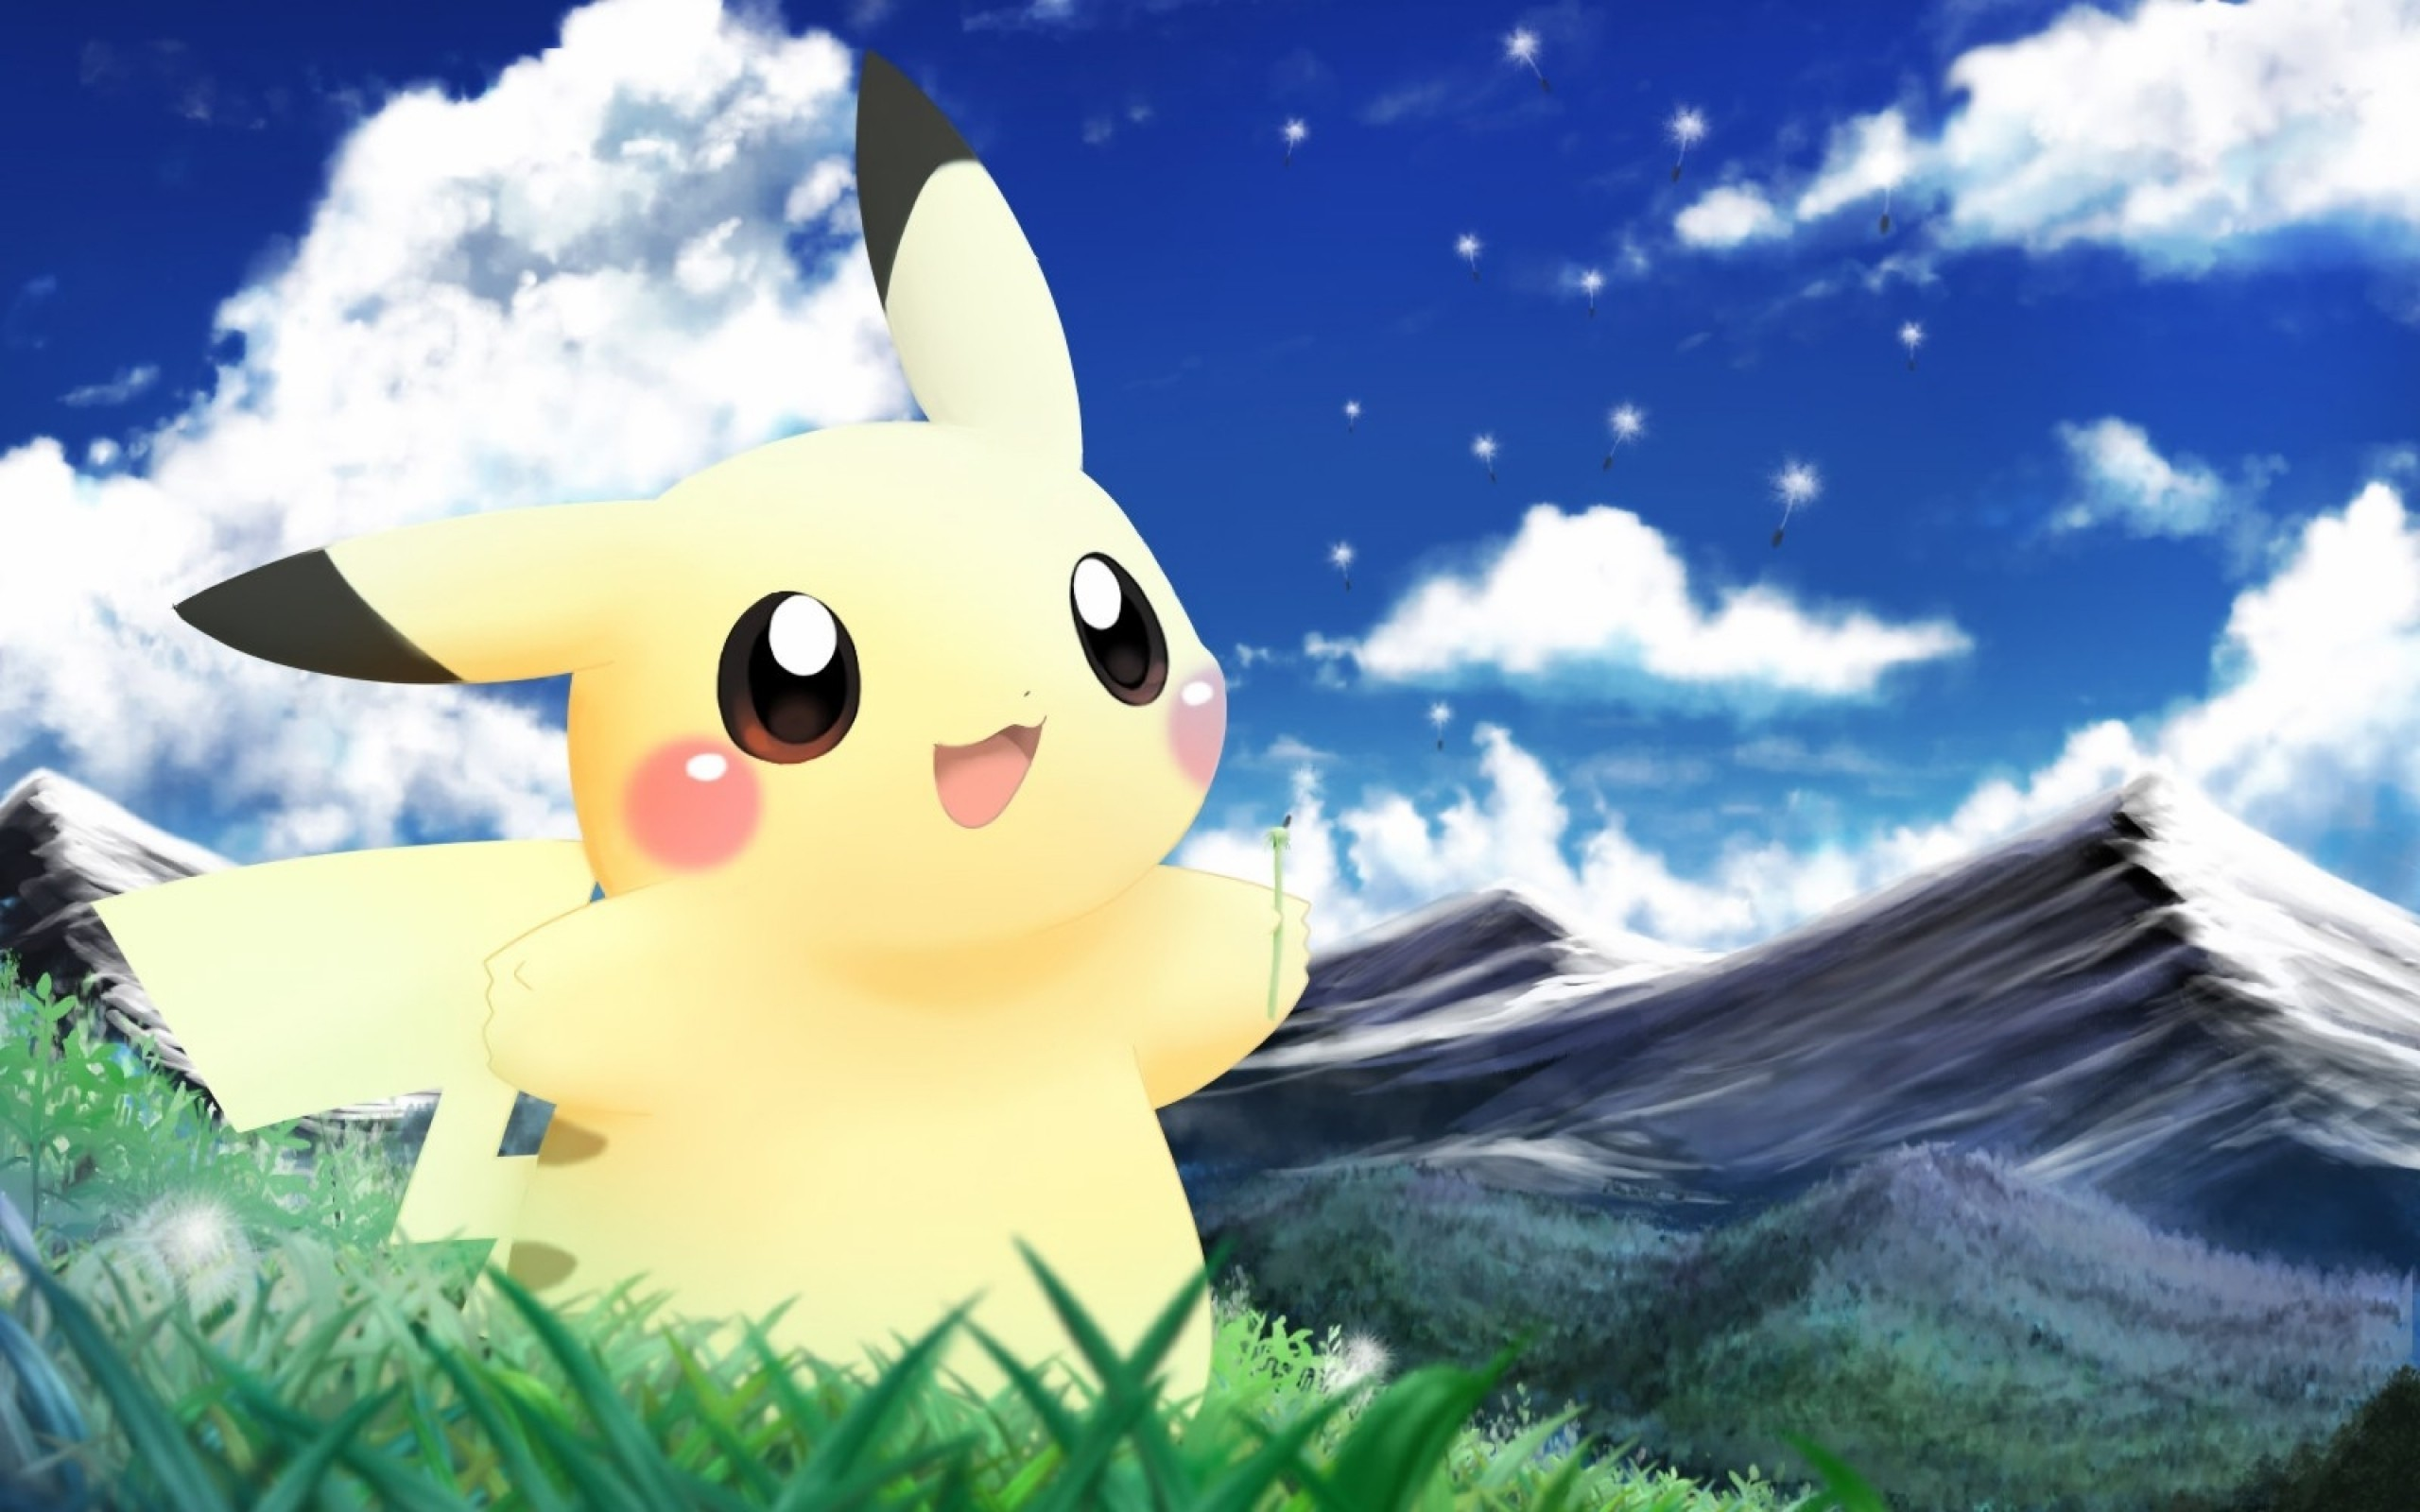 Res: 2560x1600, Cute Pokemon Wallpapers for Android